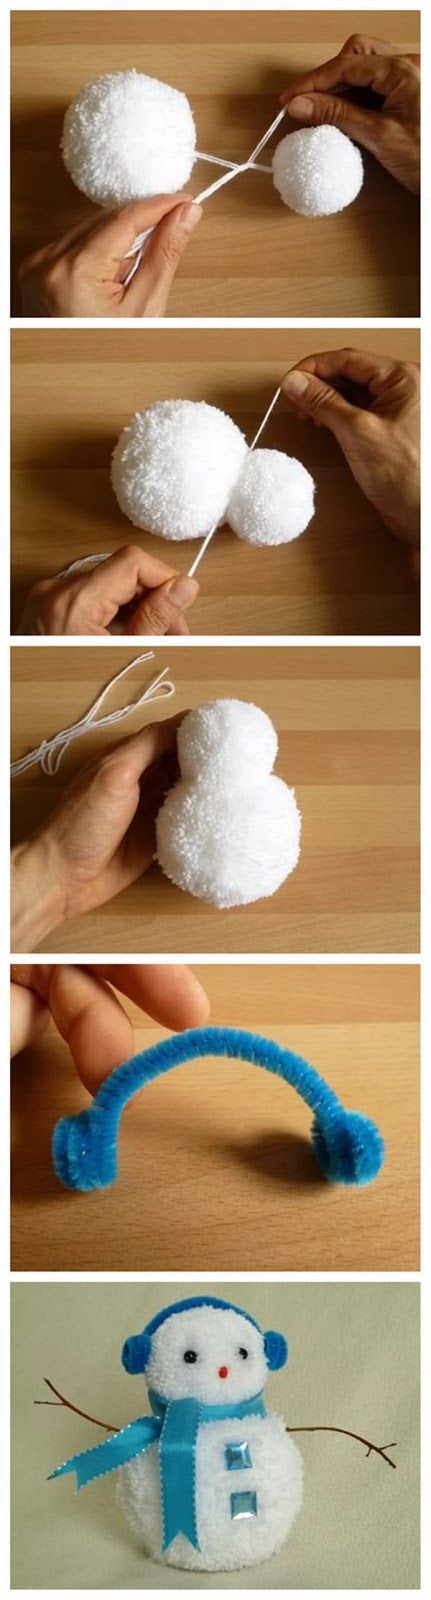 Looking for quick and easy snowman craft ideas? Here you'll find step-by-step instructions for how to make these cute Christmas snowman deco...